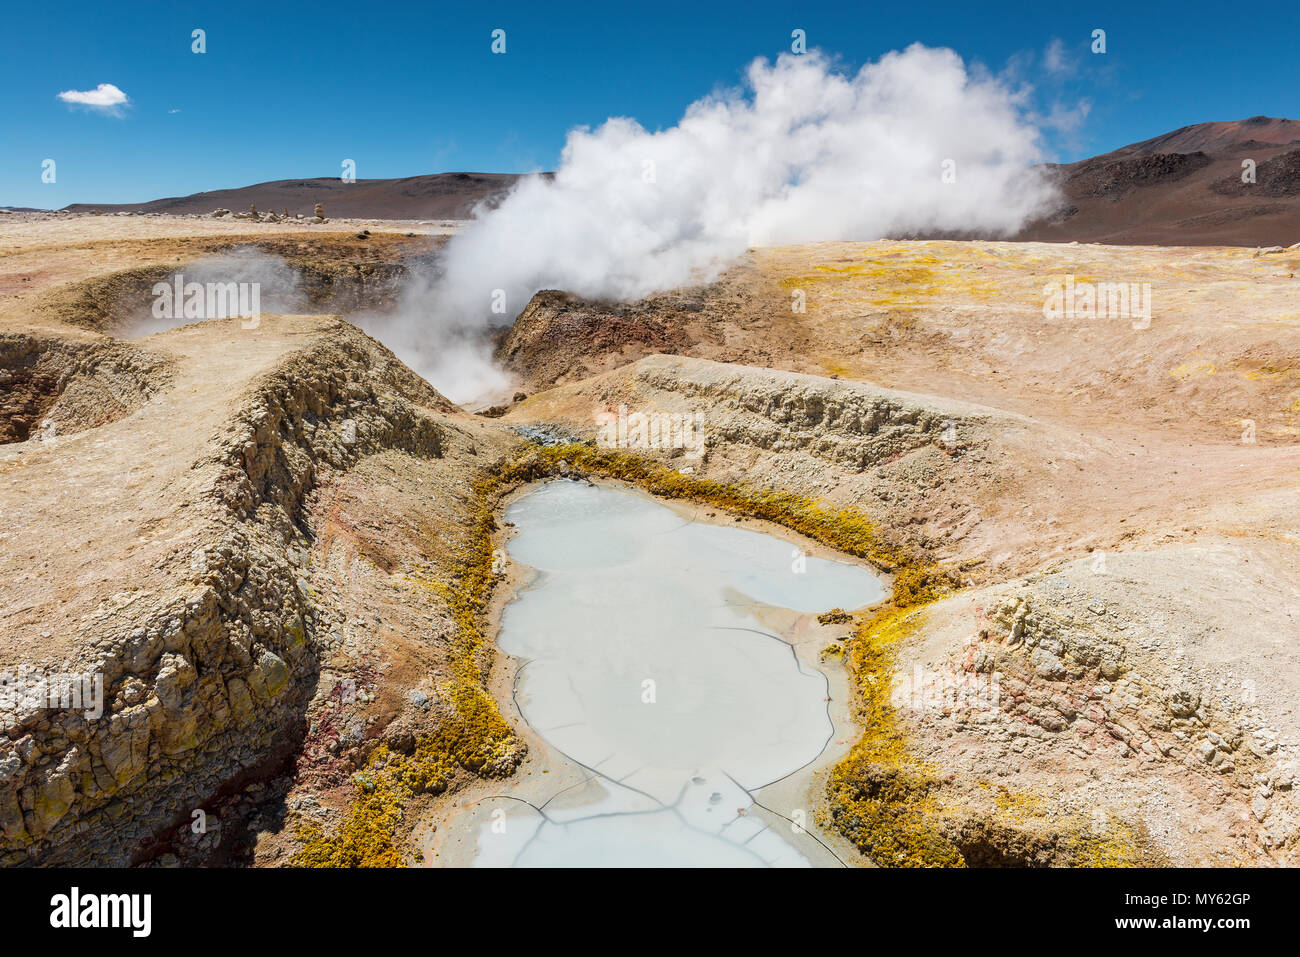 The volcanic activity of Sol de Mañana in Bolivia between Chile and the Uyuni Salt Flat. Mud pits and fumaroles with water vapor trails in the Andes. - Stock Image